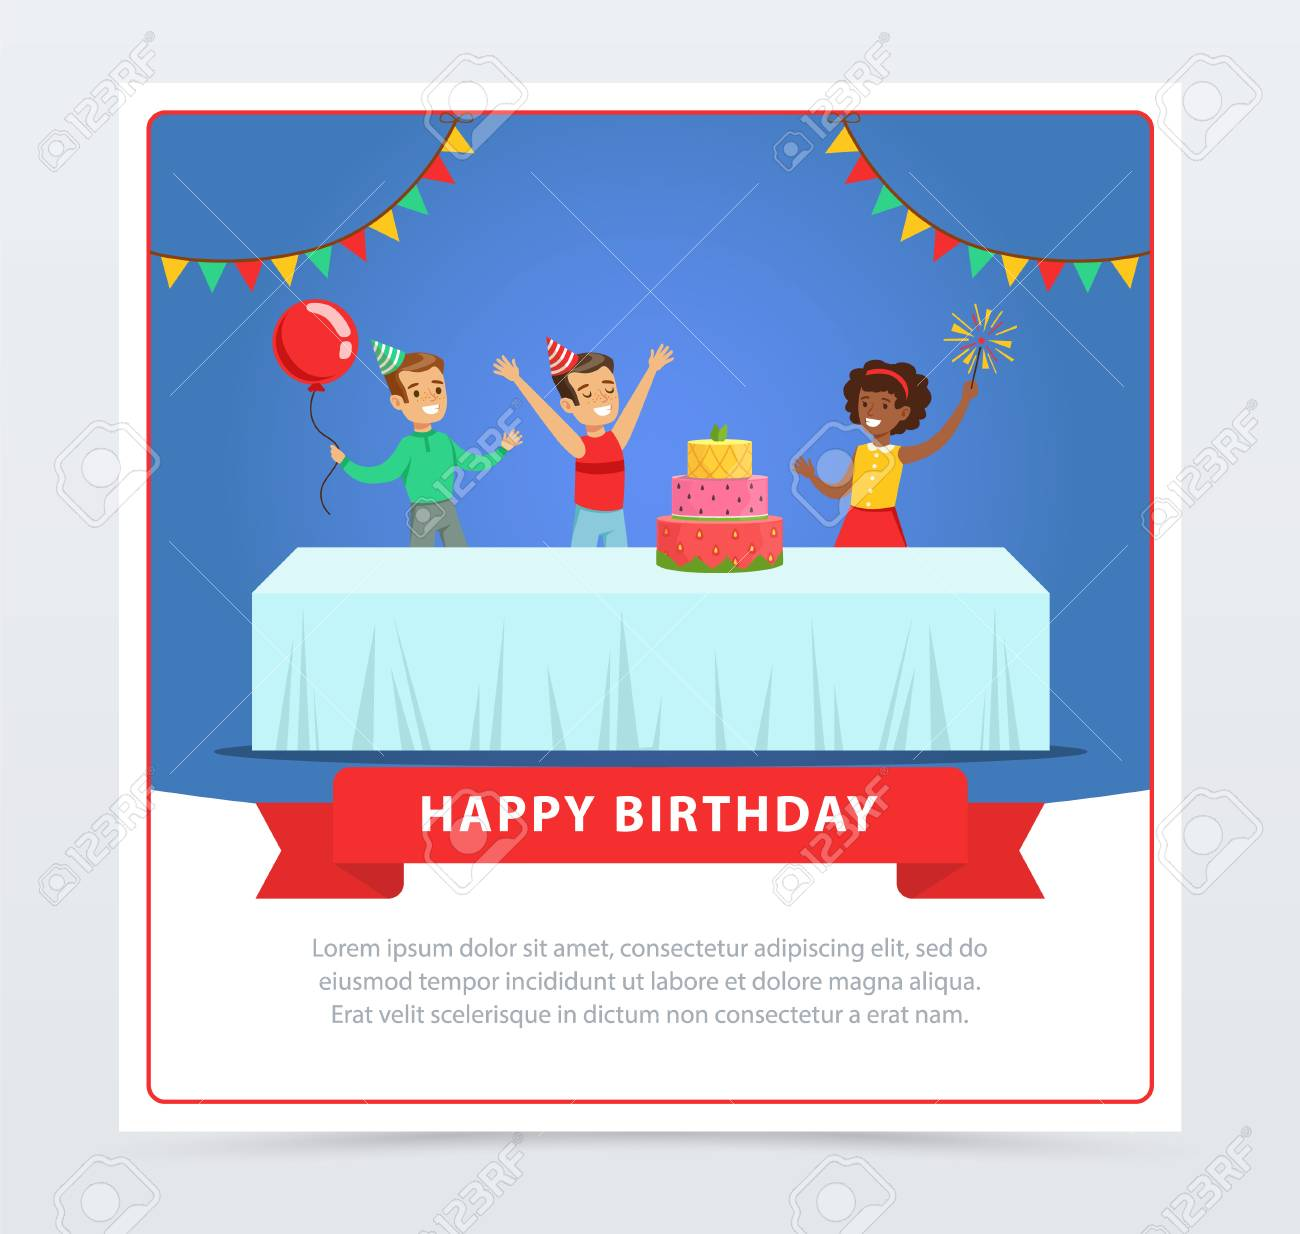 Cute Kids Celebrating Birthday With Cake Happy Banner Flat Vector Element For Website Or